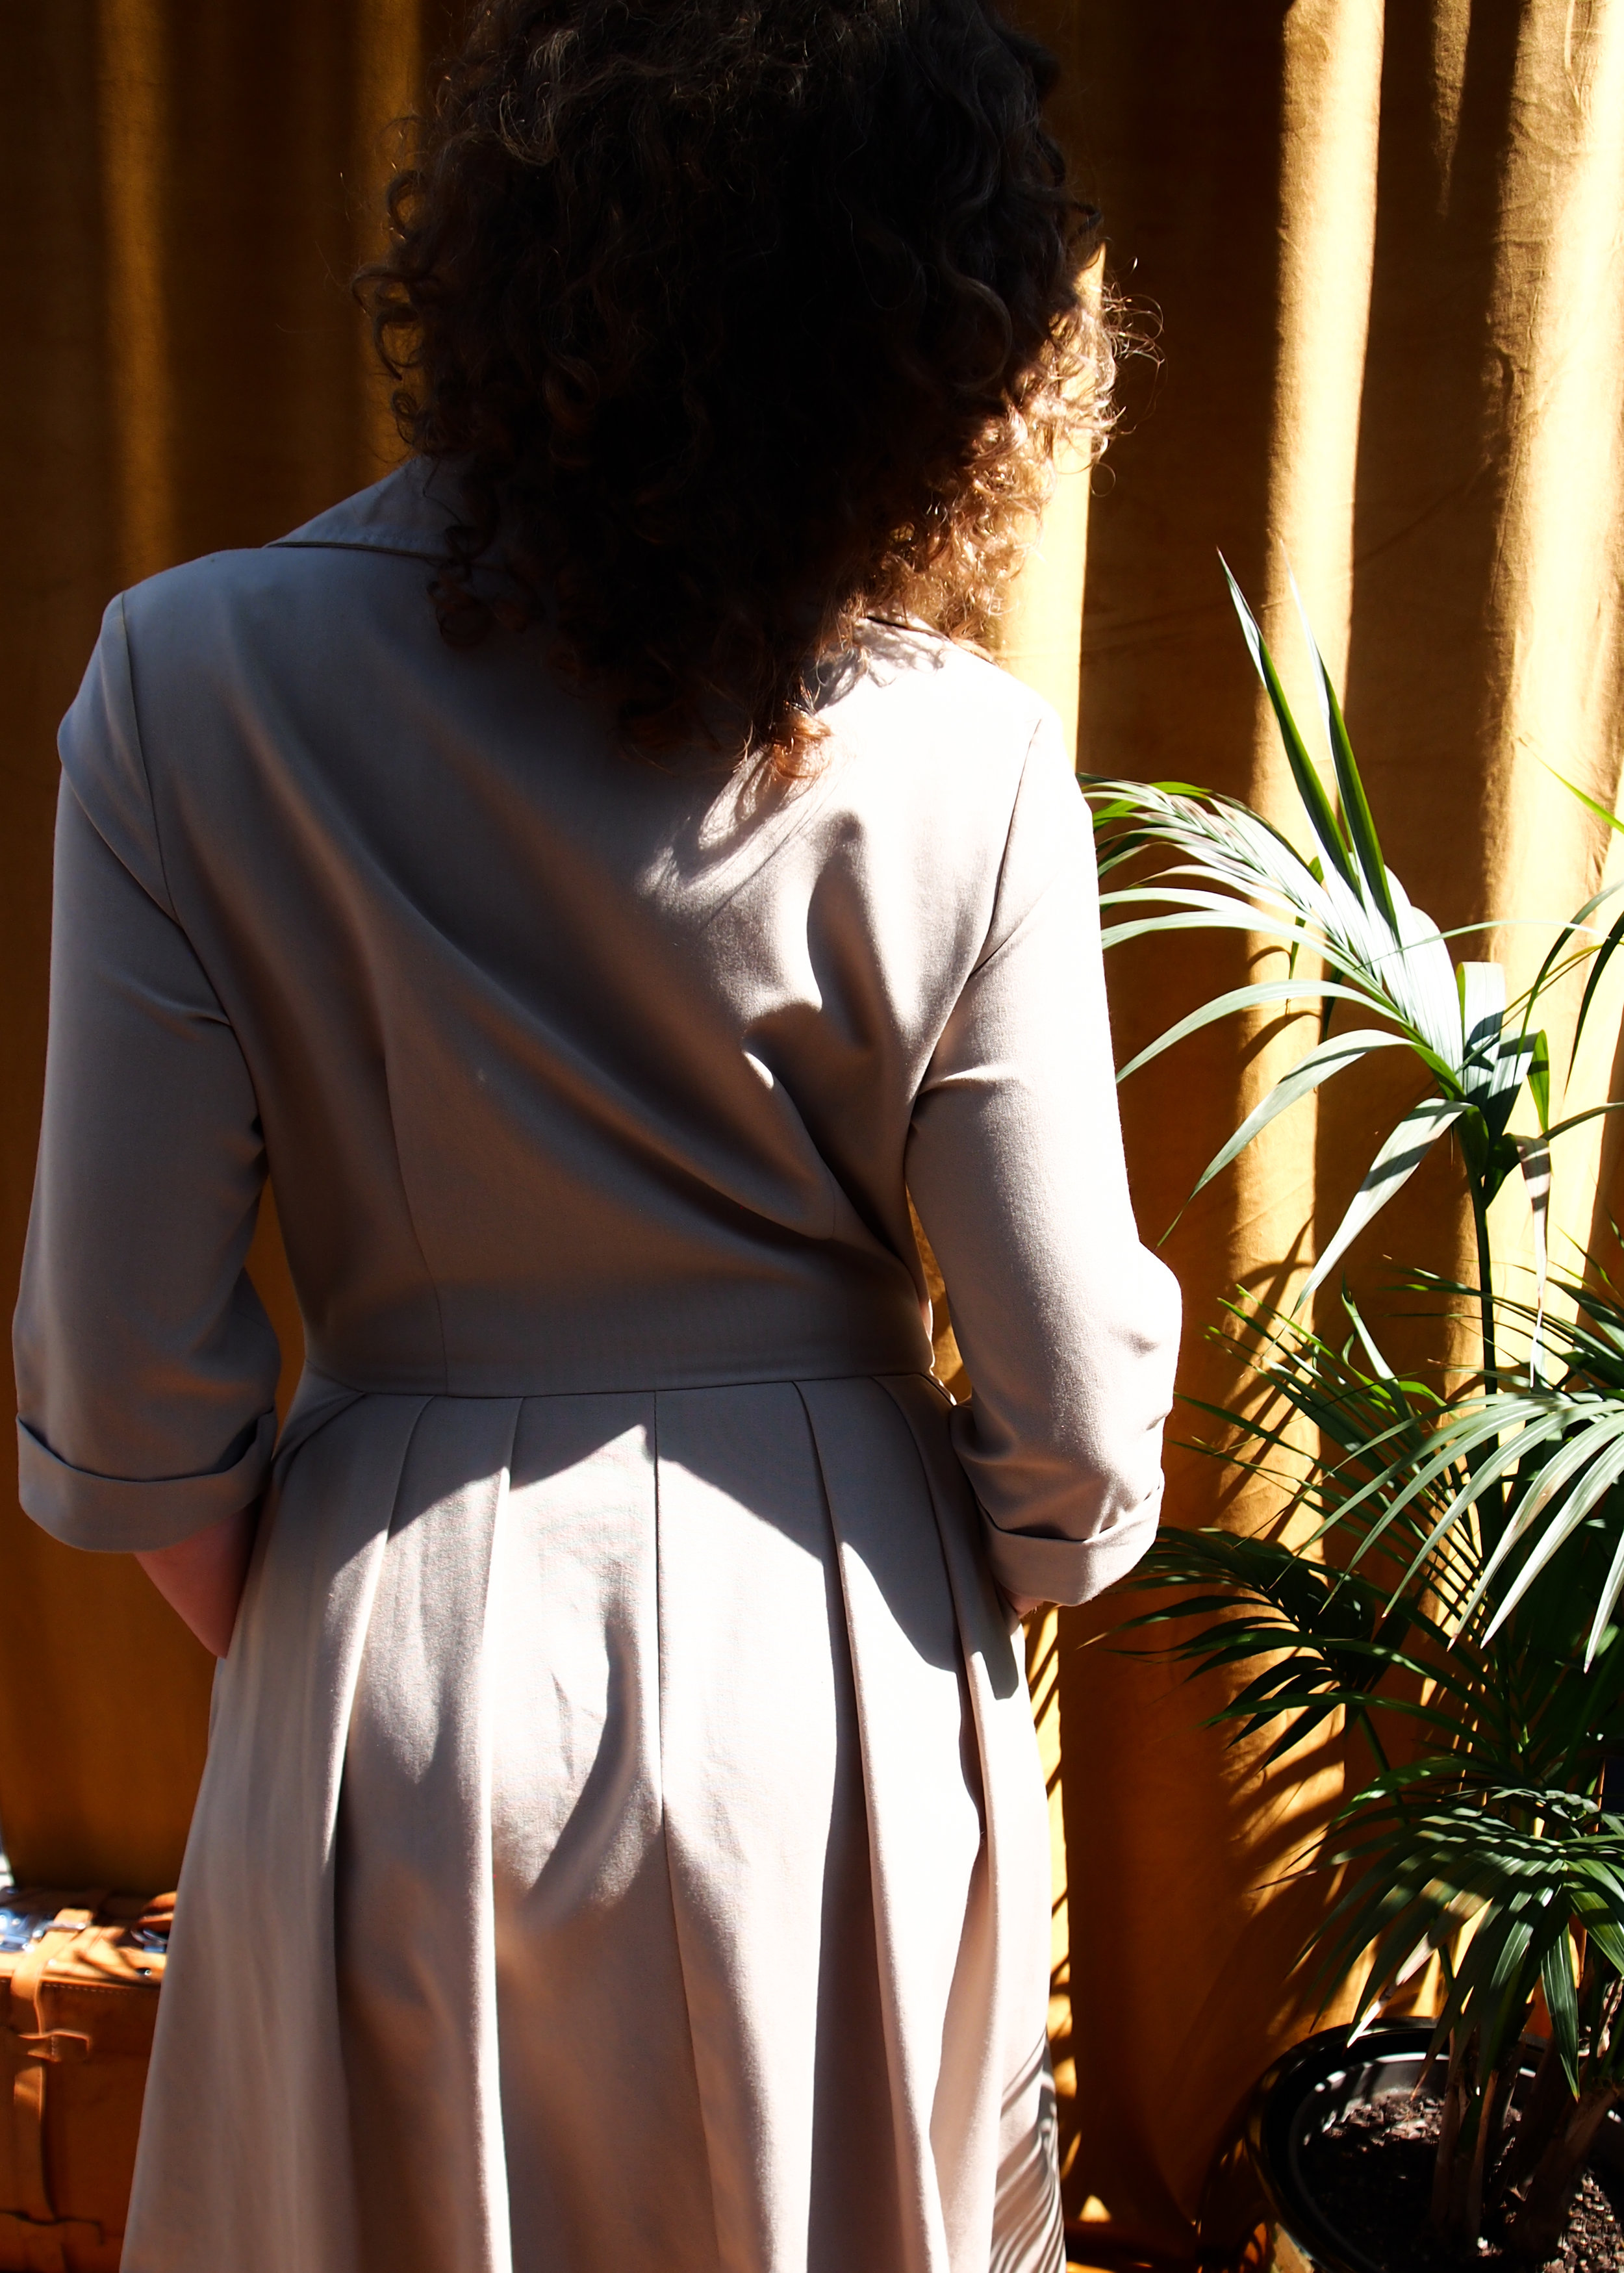 Vintage - When in doubt, just buy vintage. Your city is dotted with Op shops and secondhand stores full of preloved items that could use a second life. Don't waste it, wear it. Check out our Vintage Wardrobe.www.lauralana.com.au